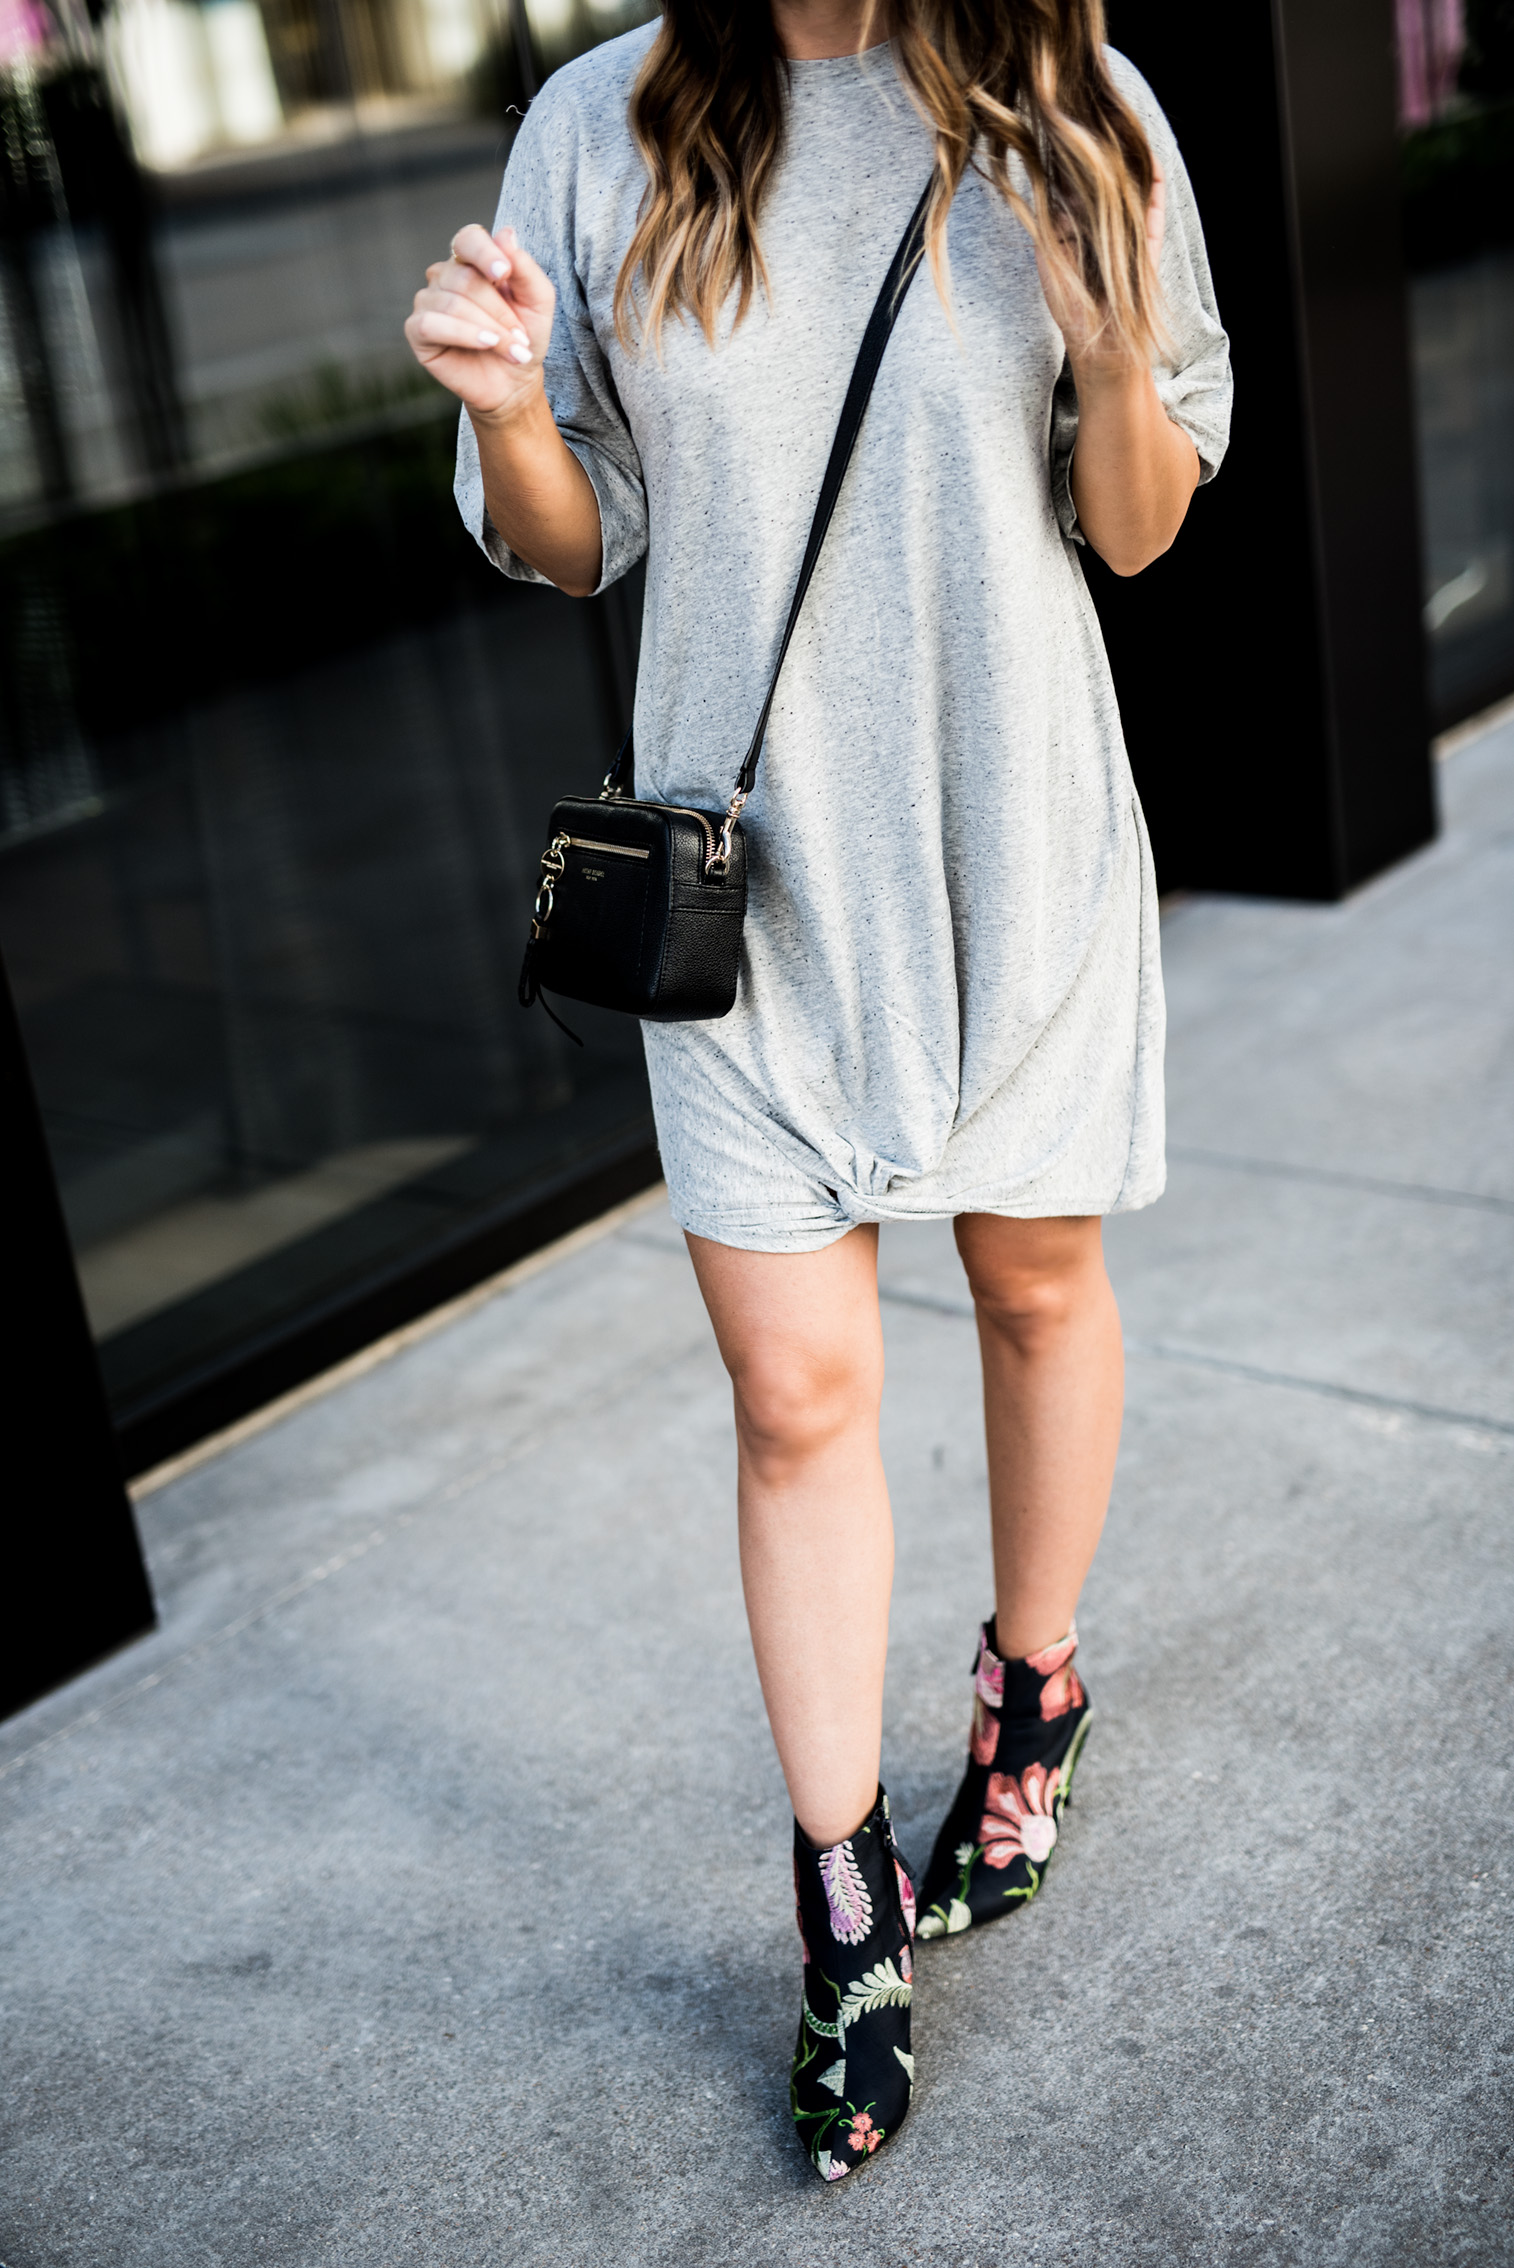 Tiffany Jais Houston fashion and lifestyle blogger | embroidered ankle boots, henri kendal bag, grey t-shirt dress, casual outfit ideas, streetstyle 2017, summer streetstyle